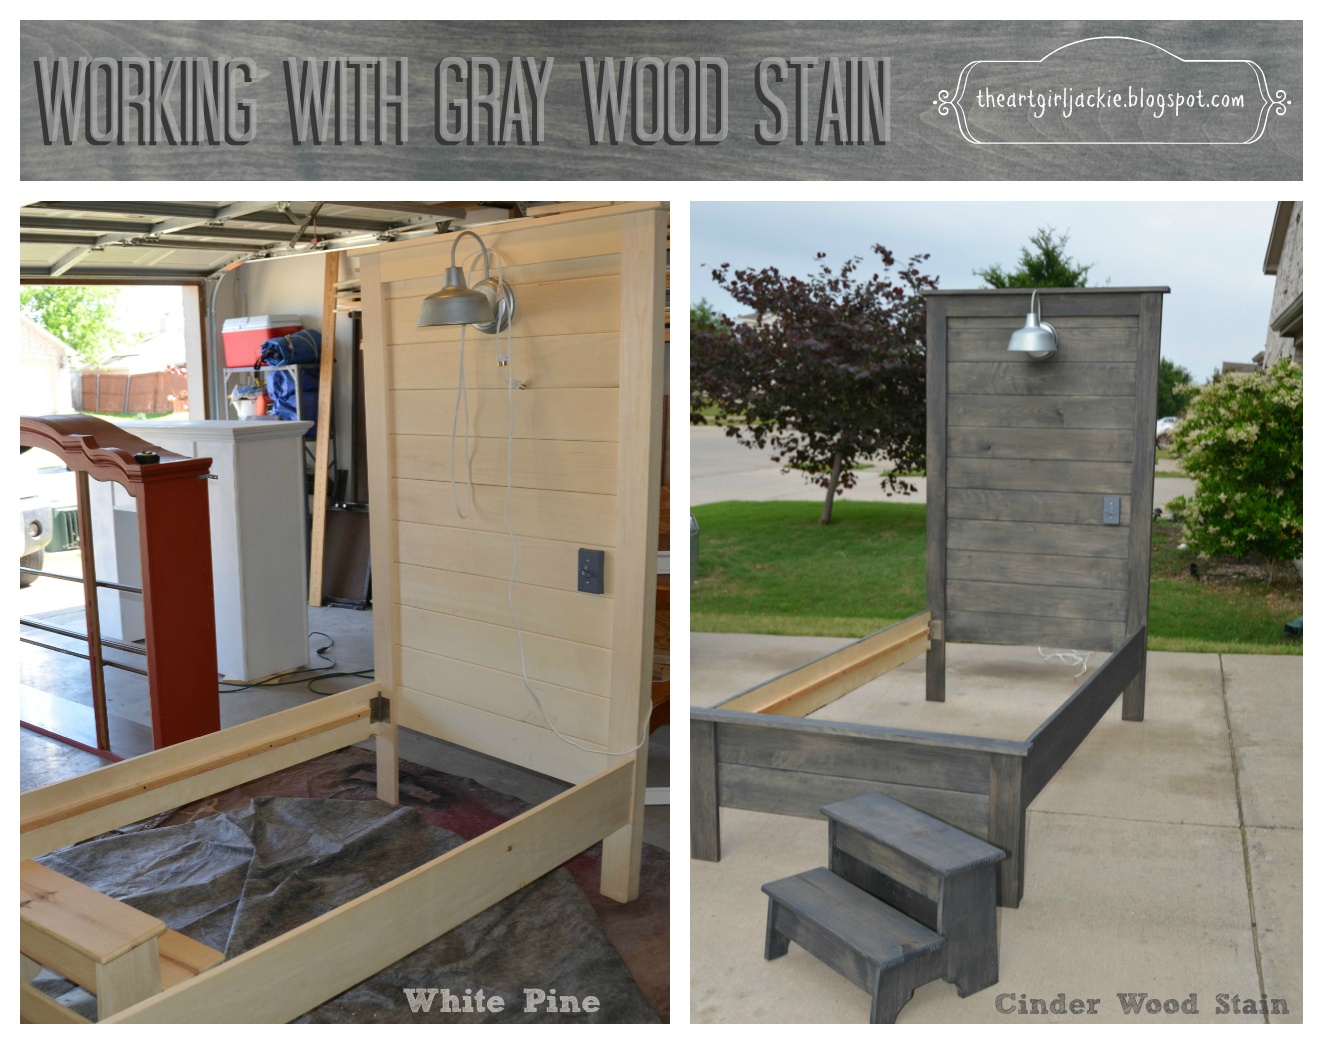 Achieving the Perfect Gray Wood Stain theartgirljackietutorials